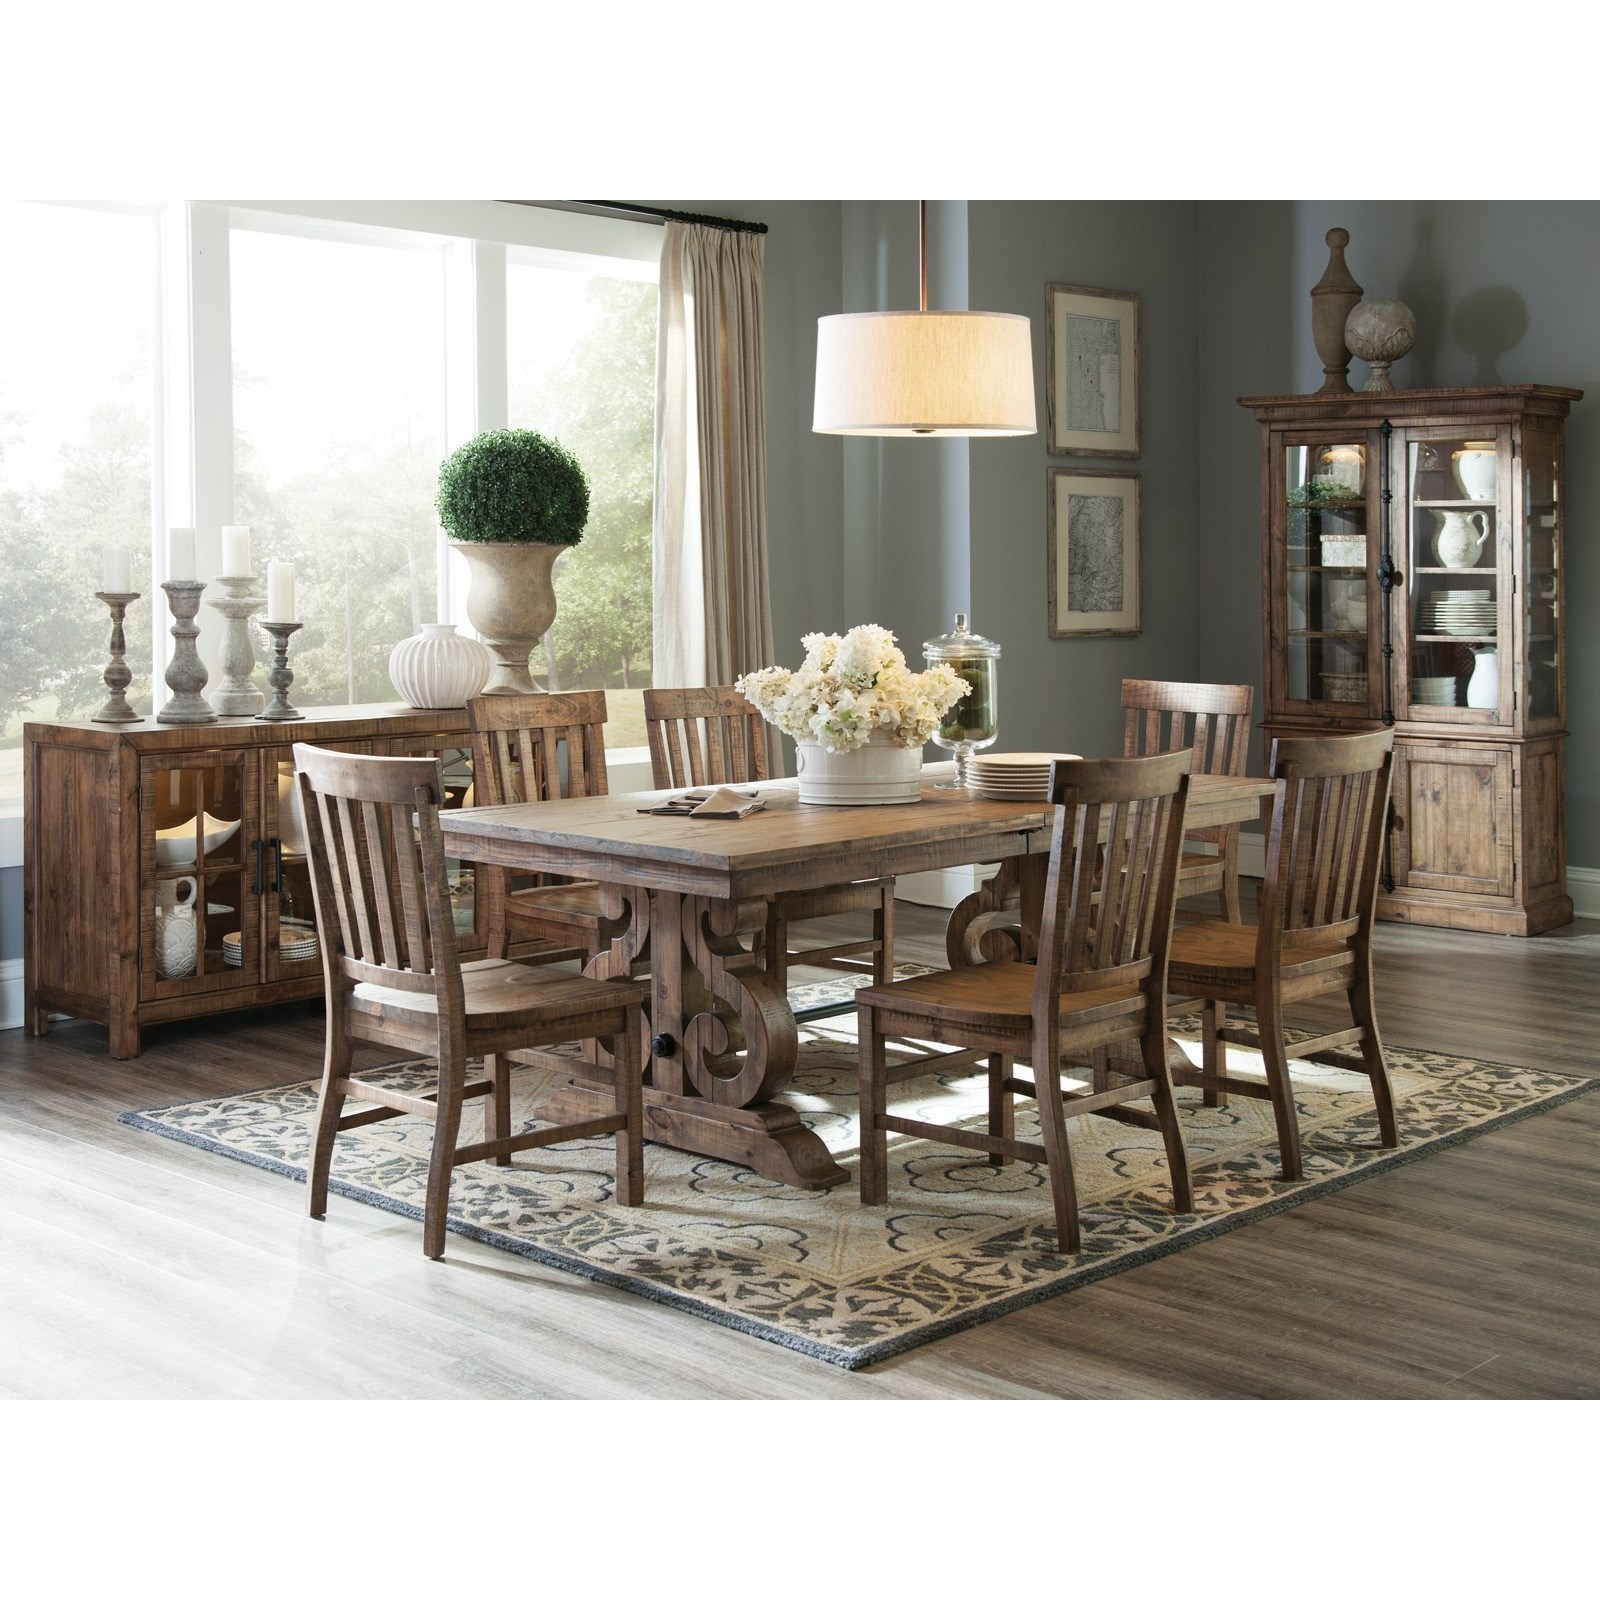 Magnussen Home WilloughbyCasual Dining Room Group